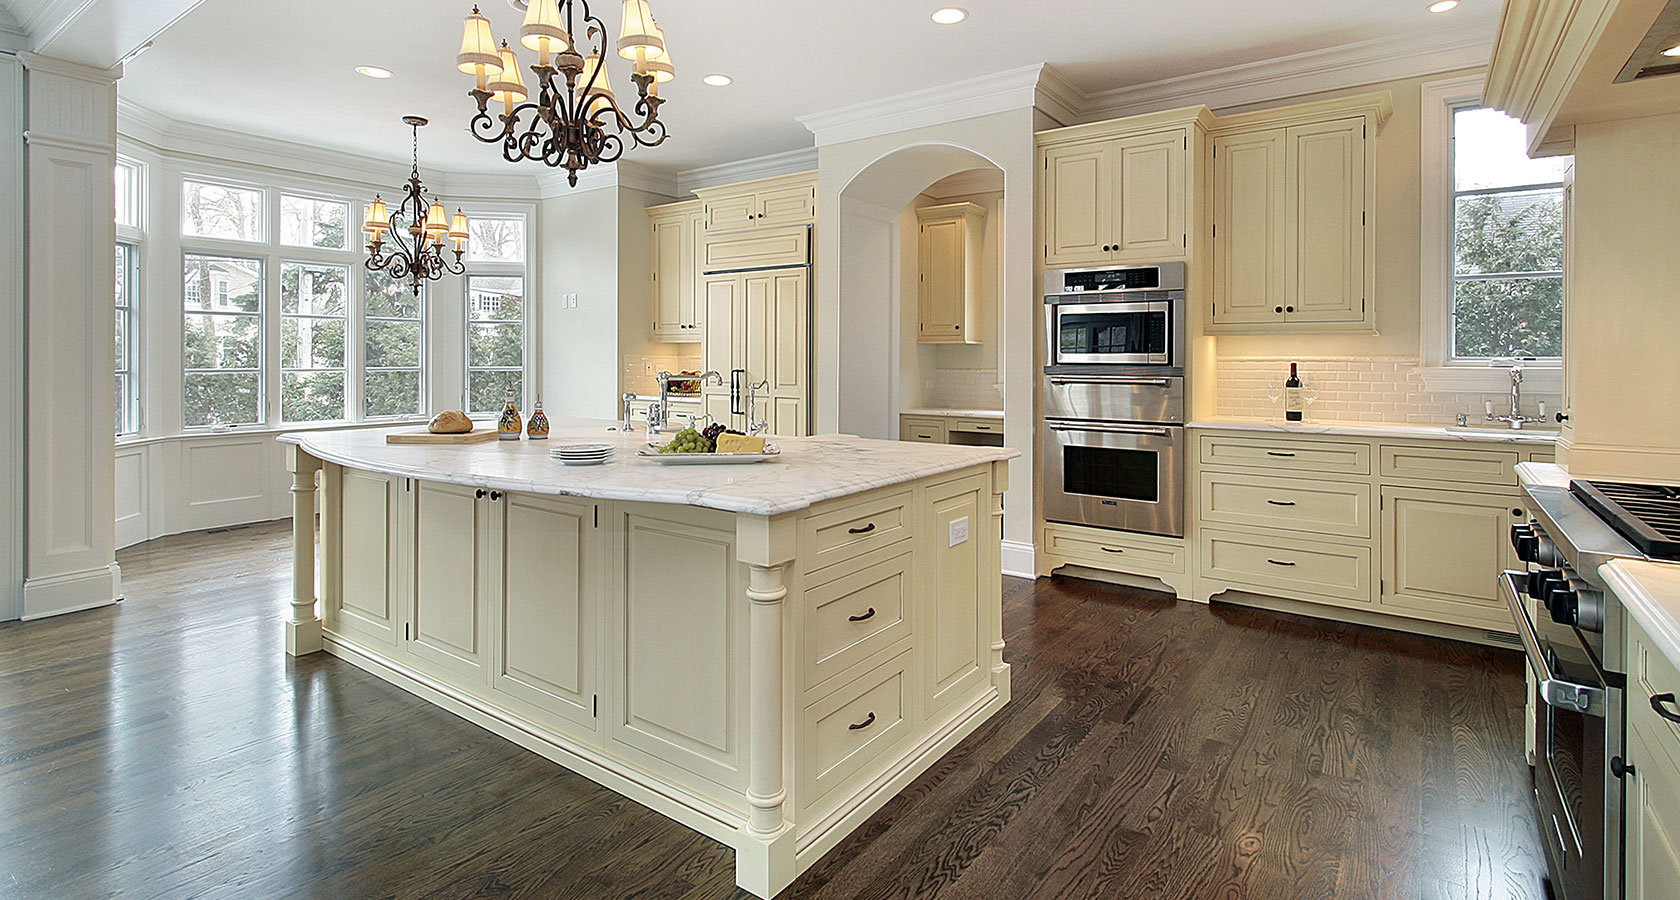 Richstone Marble & Granite, Countertop, Virginia, VA